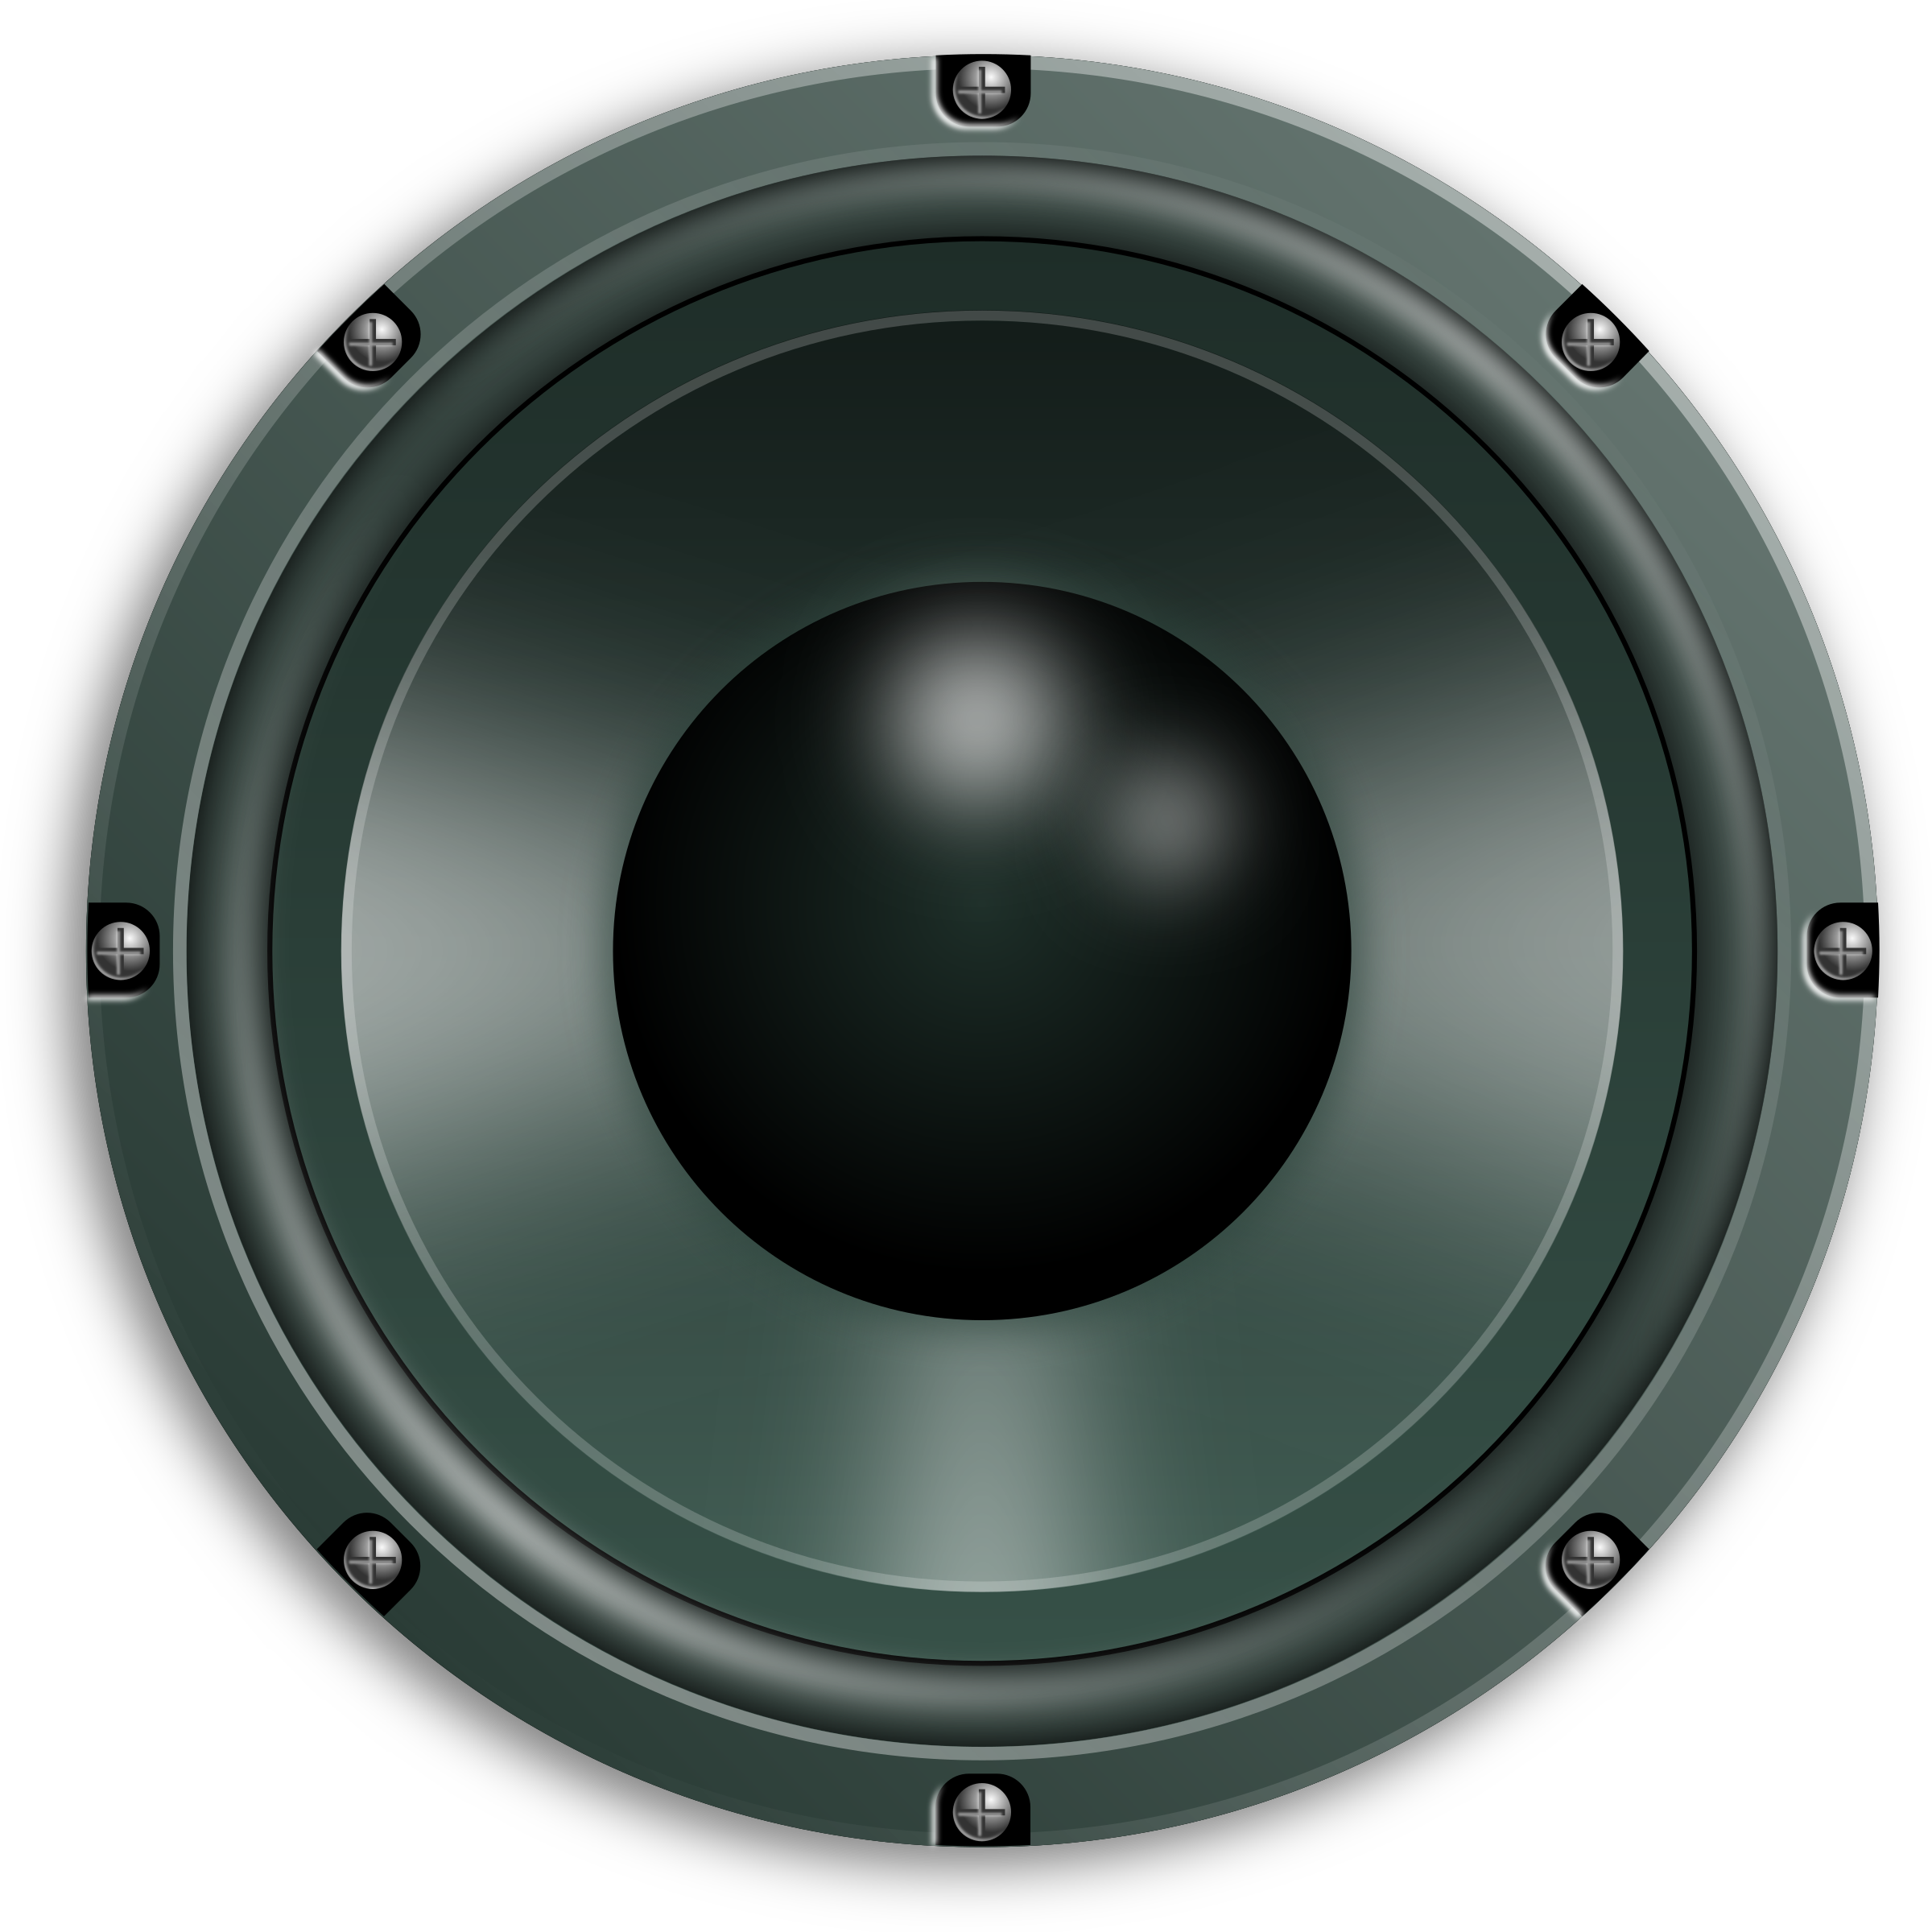 Car speakers clipart clip black and white library Audio Speaker PNG Image - PurePNG | Free transparent CC0 PNG Image ... clip black and white library